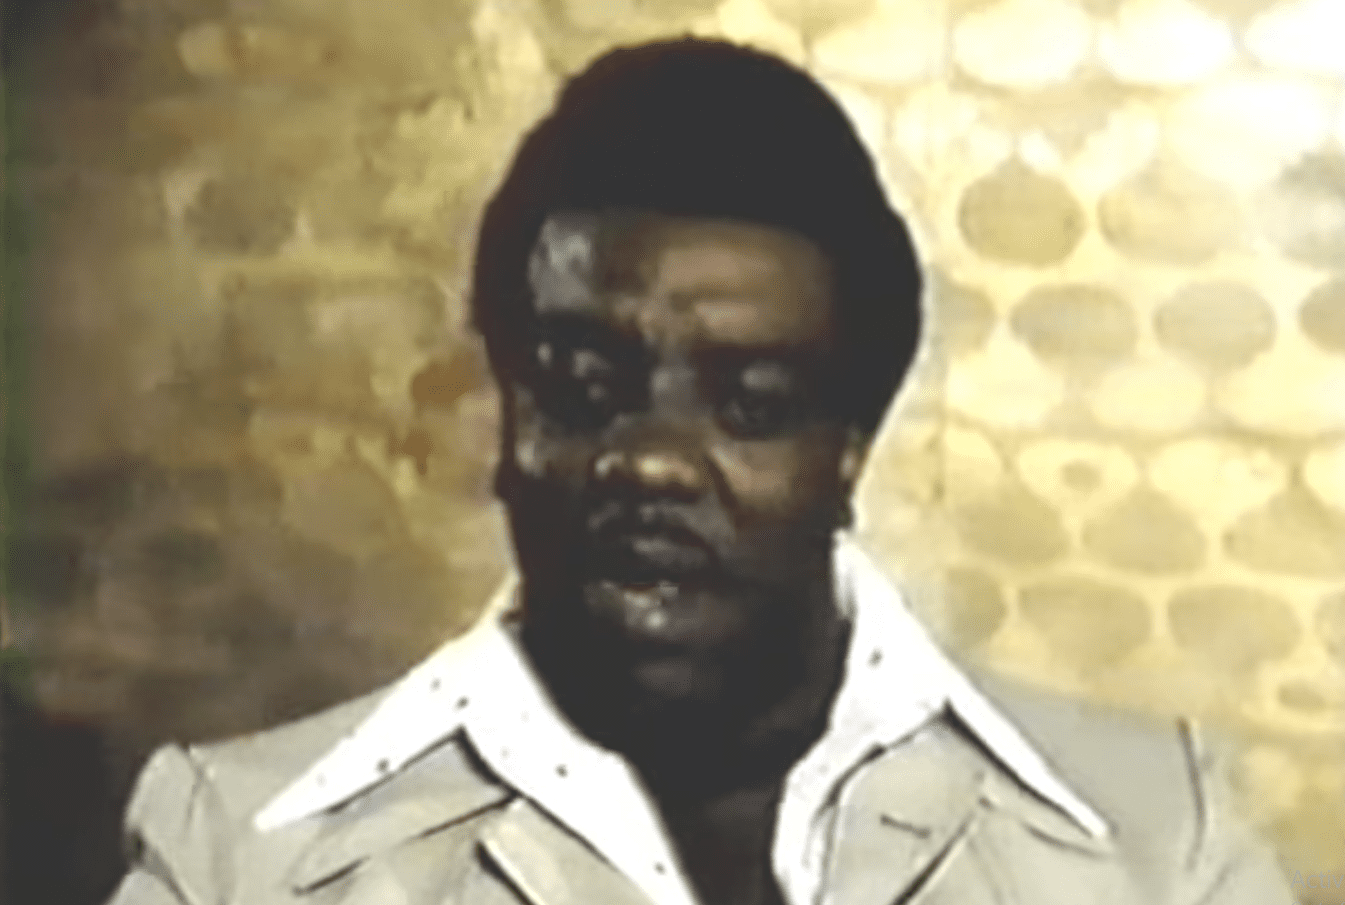 Rev. James Cleveland in an interview talking about the Gospel Music Workshop of America he founded. | Photo: YouTube/ GarrisonBullier